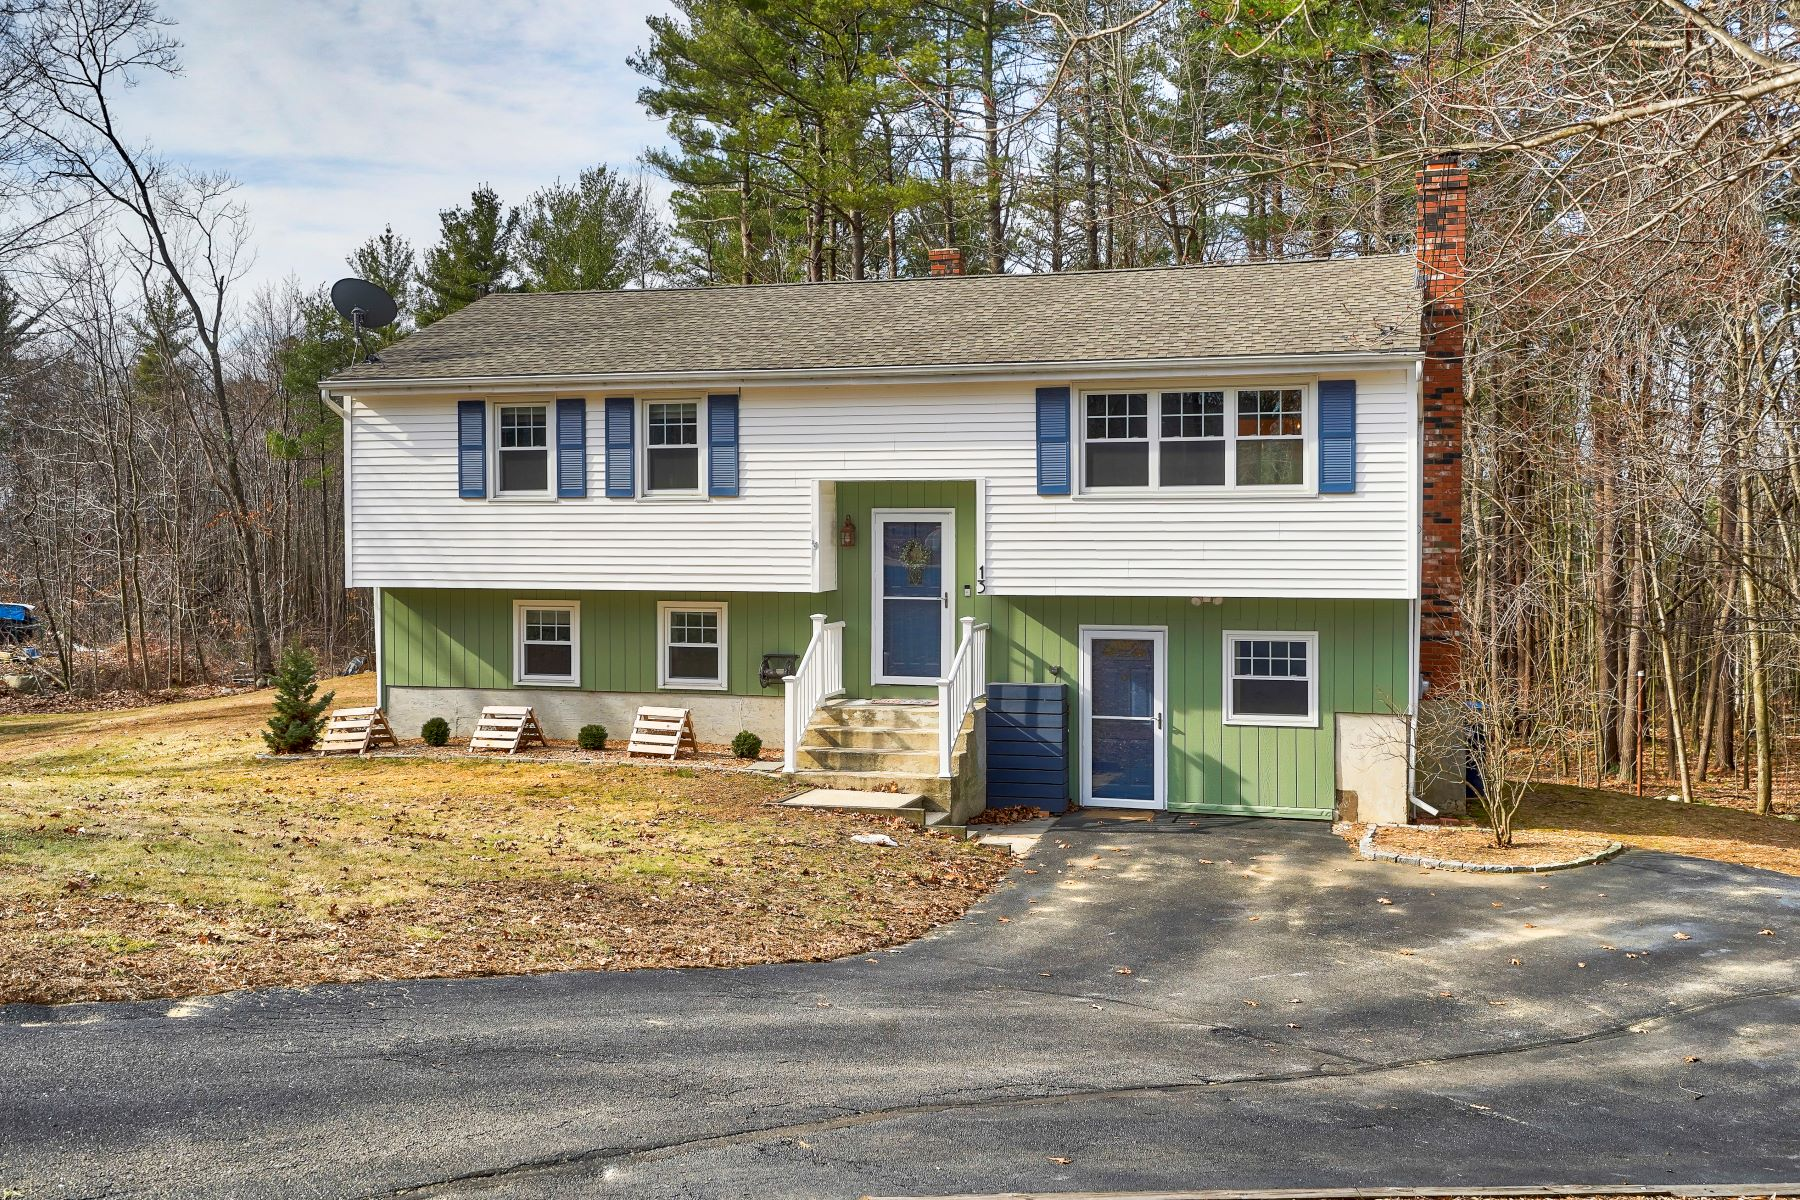 Single Family Homes for Sale at 13 Lubern Avenue Allenstown, New Hampshire 03275 United States